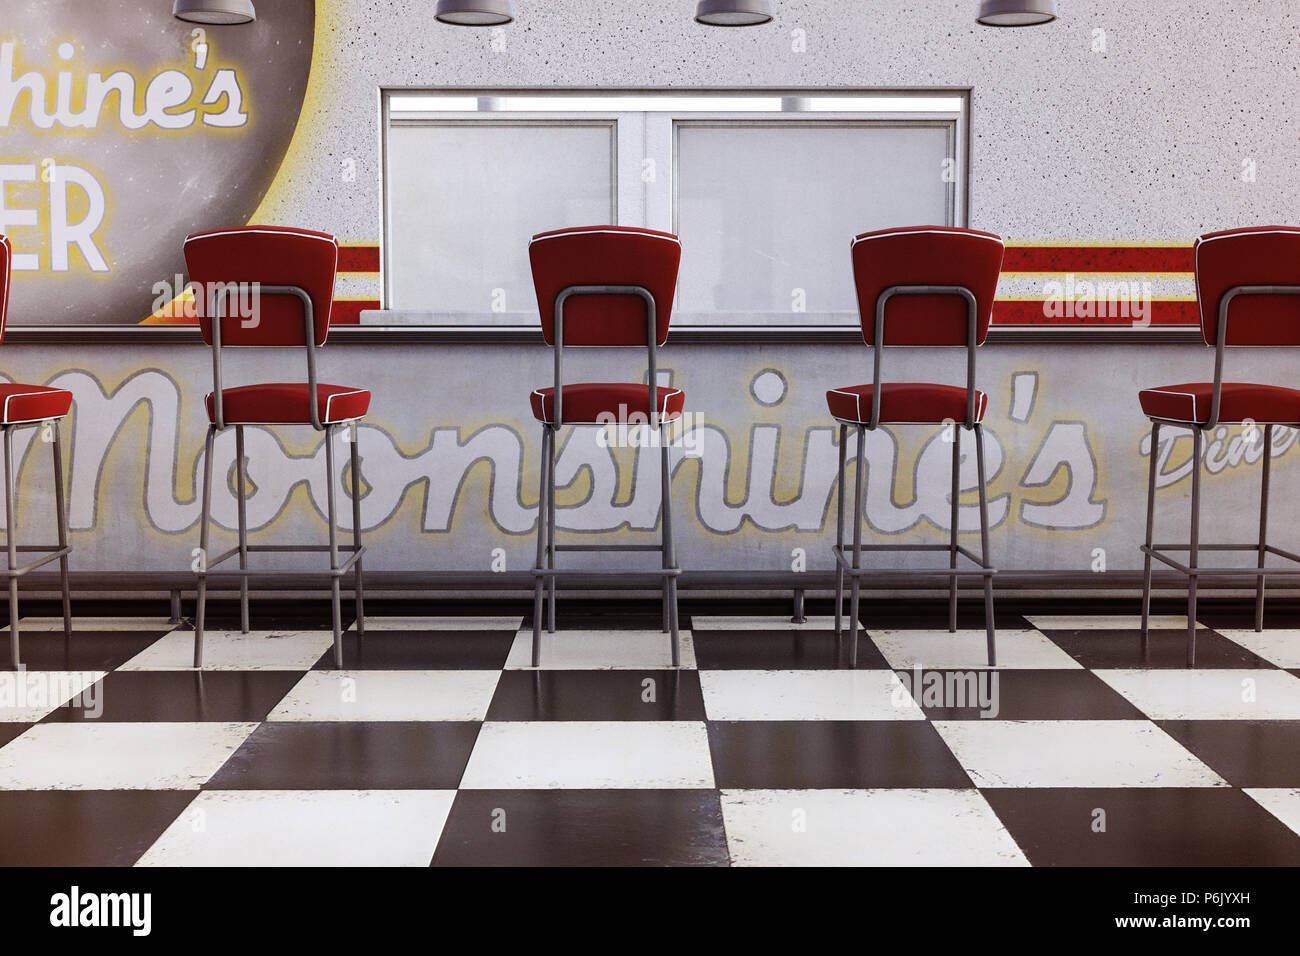 Vintage Diner Counter With Red Stools And Checked Floor 3d Render Stock Photo Alamy